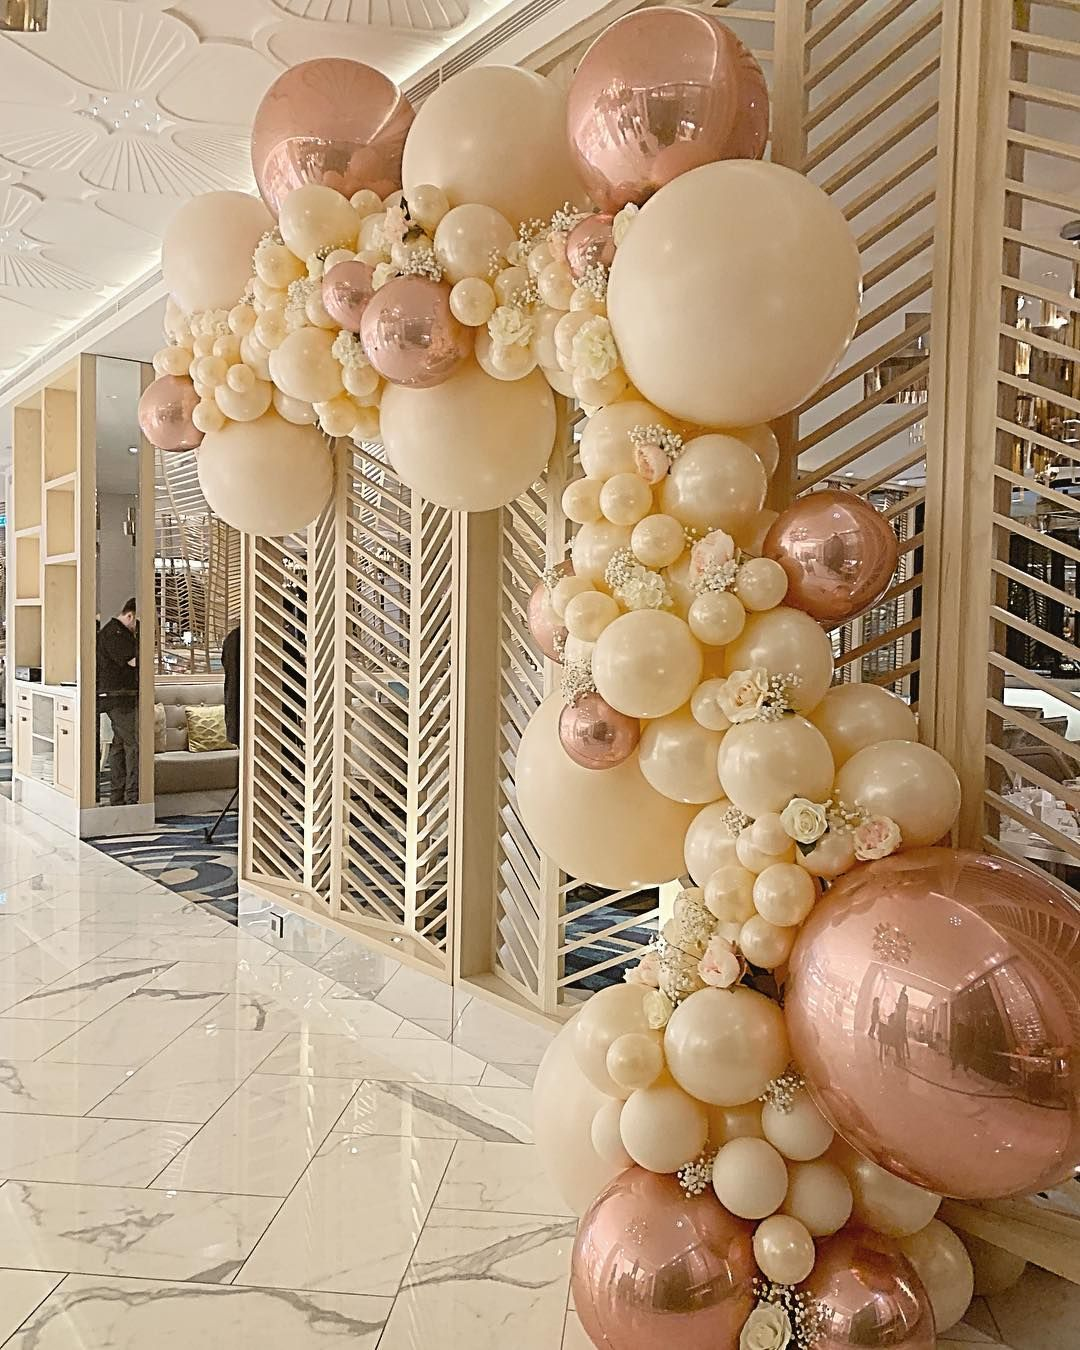 Perth Balloon Garlands On Instagram Wedding Entrance At The Epicurean Crownperth Perthballoons Perthweddin Balloon Garland Wedding Balloons Balloons